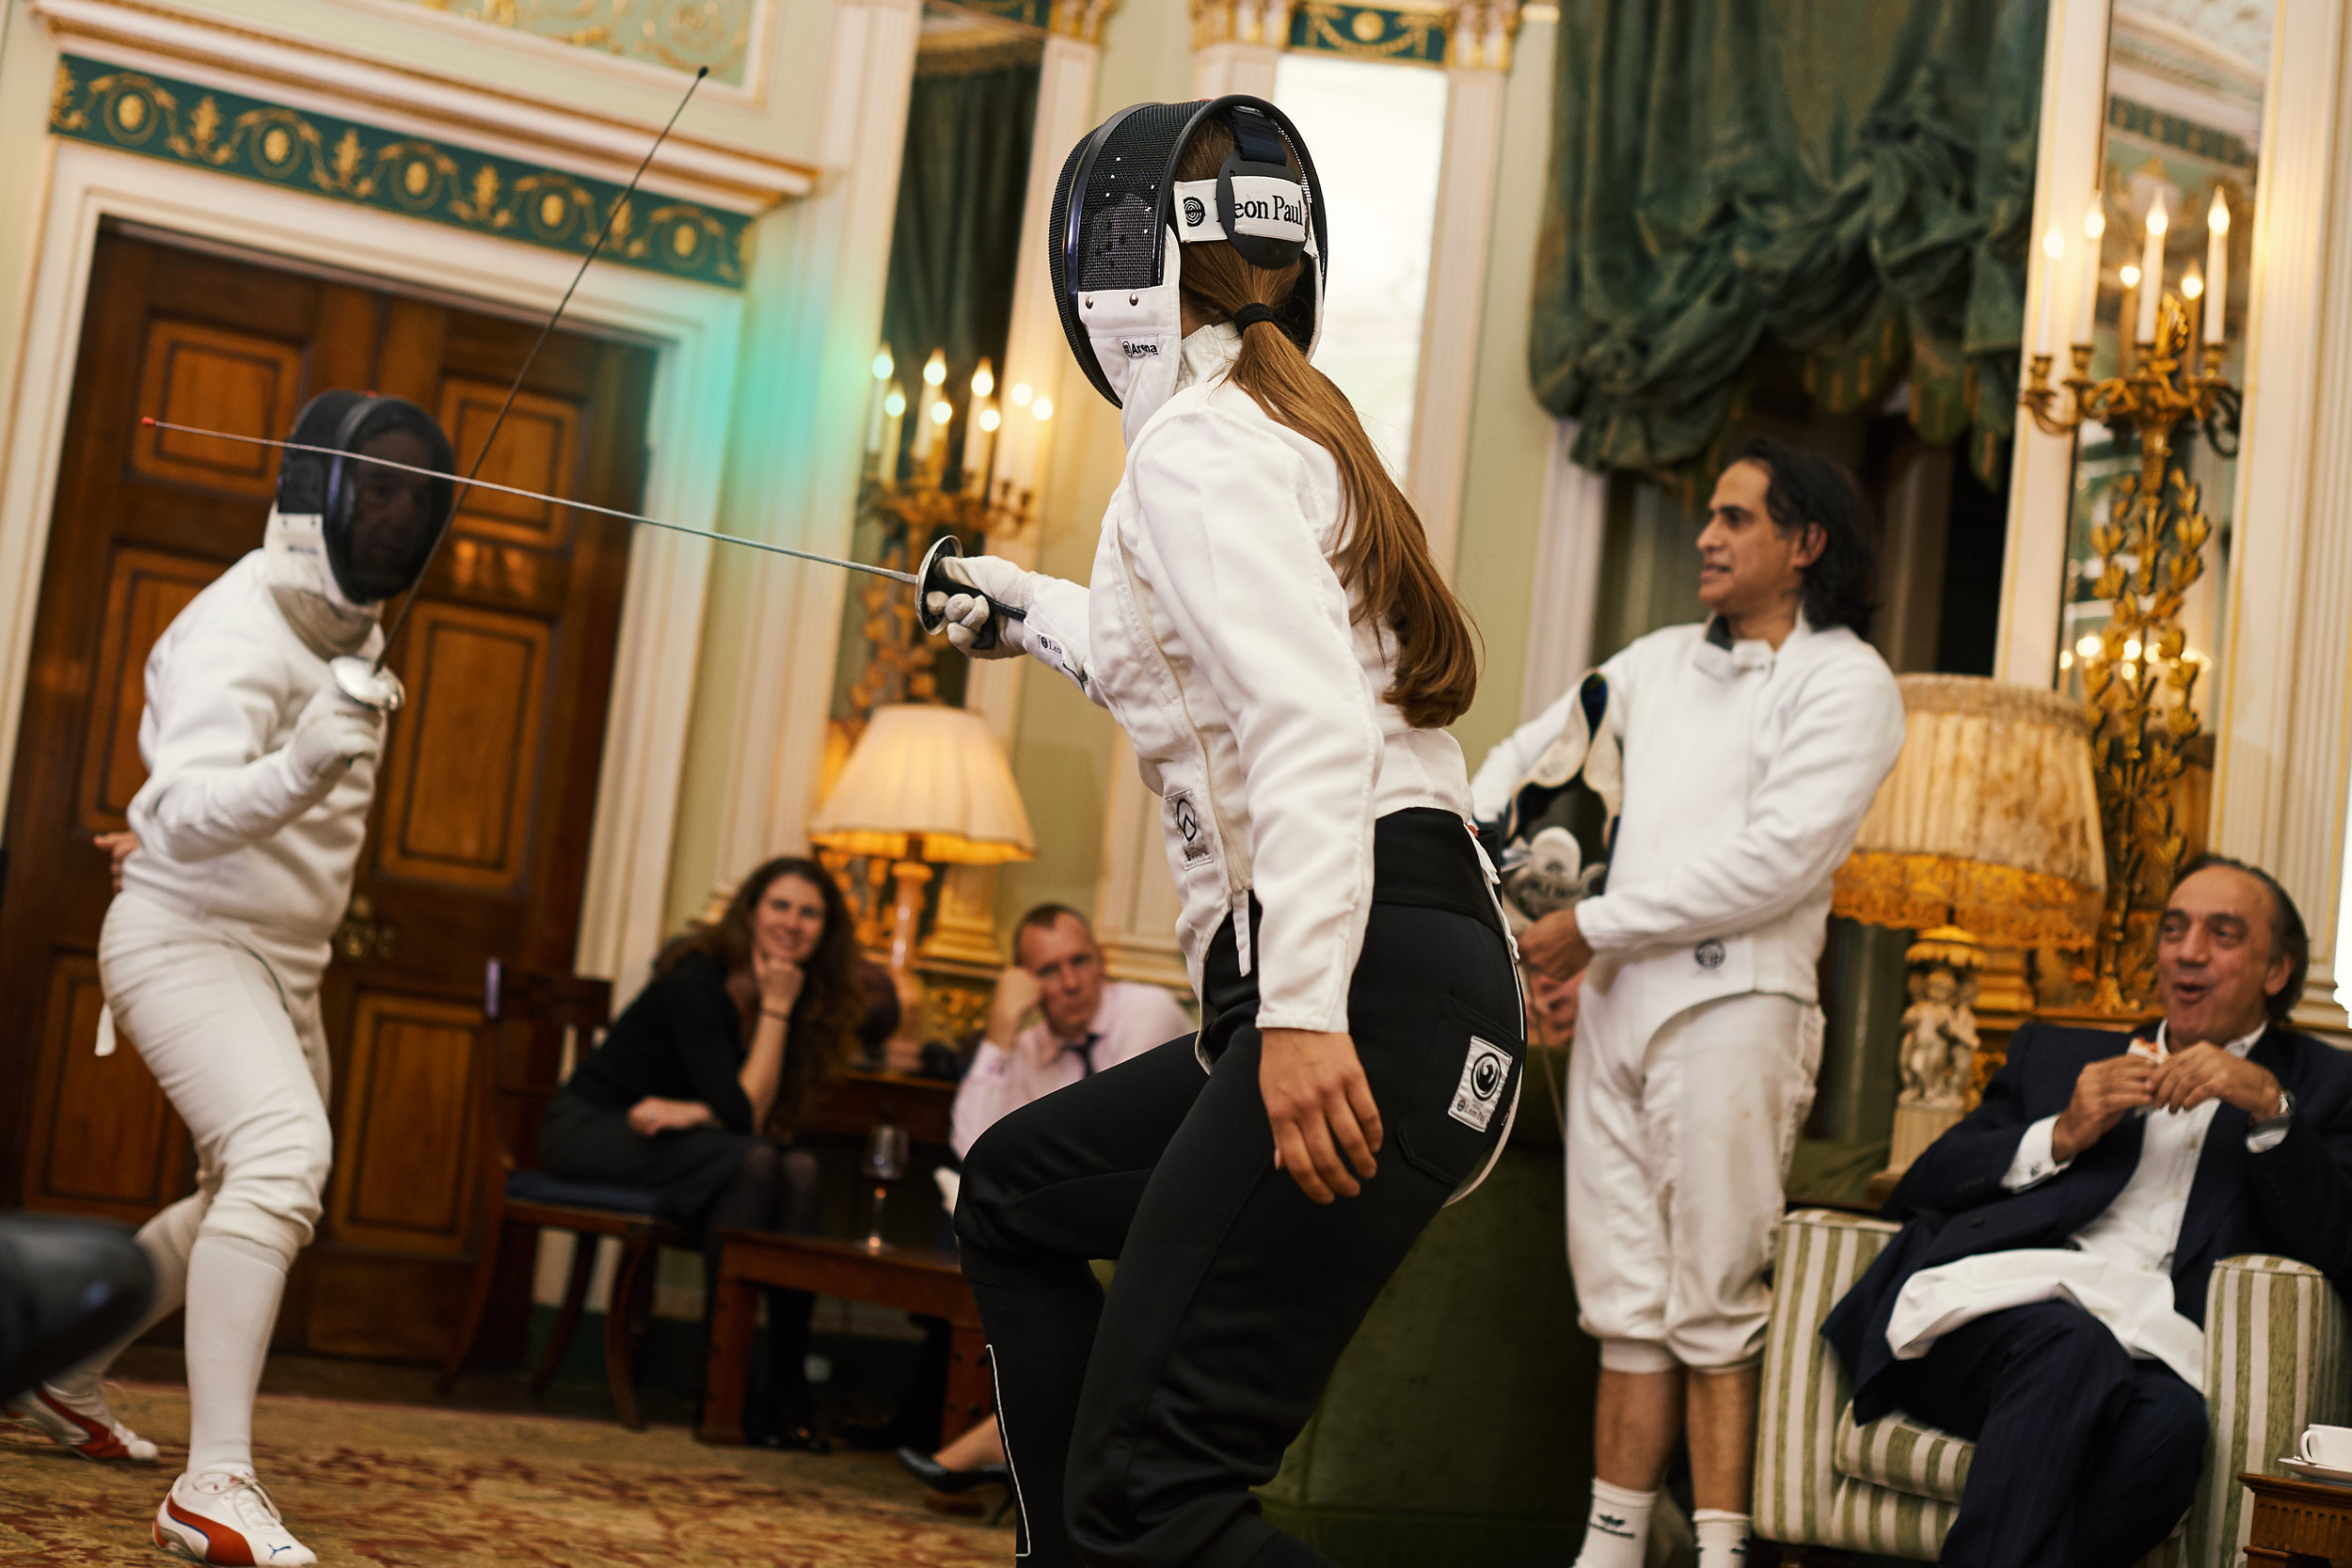 Fencing event at Home House